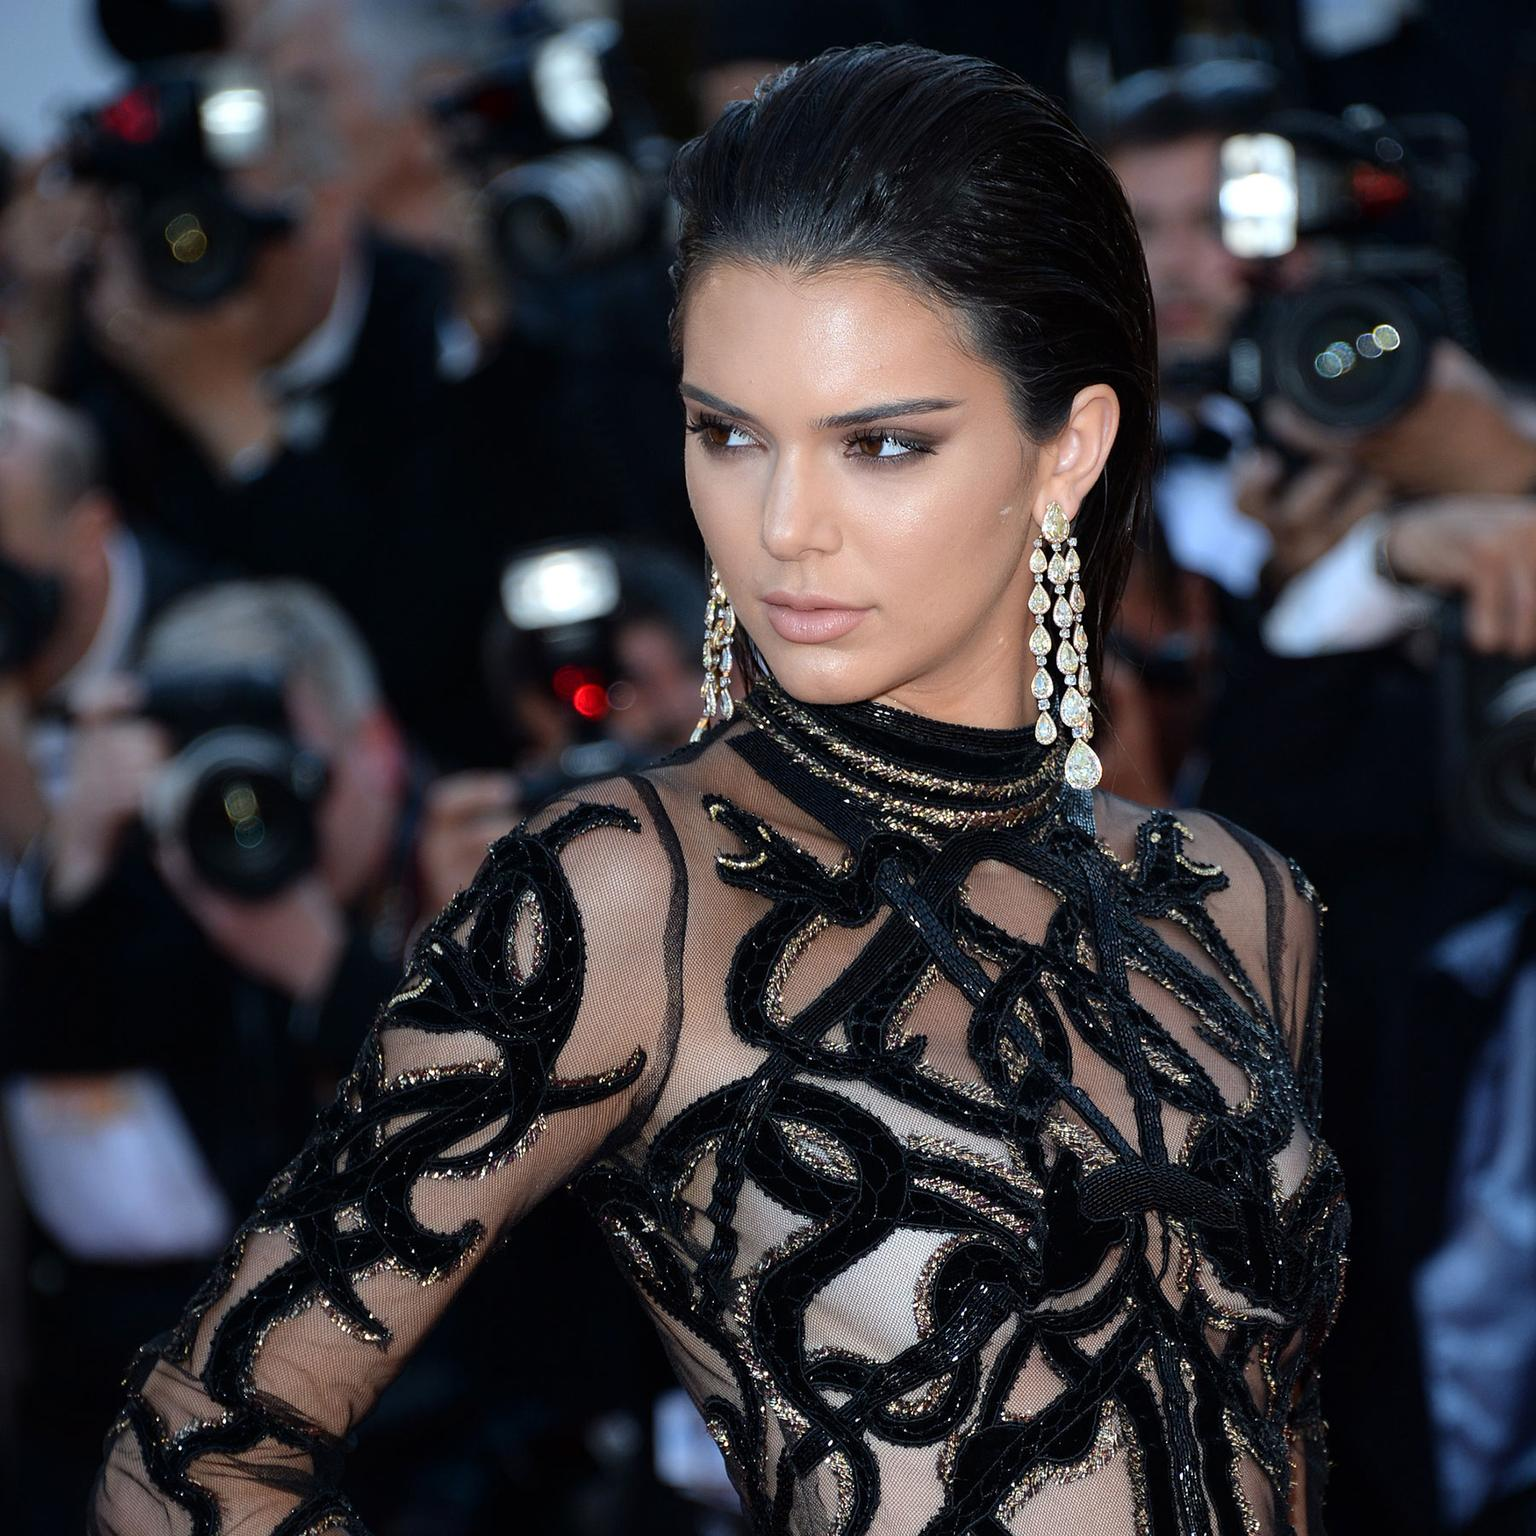 Cannes 2016 Day 5: Kendall Jenner in Chopard